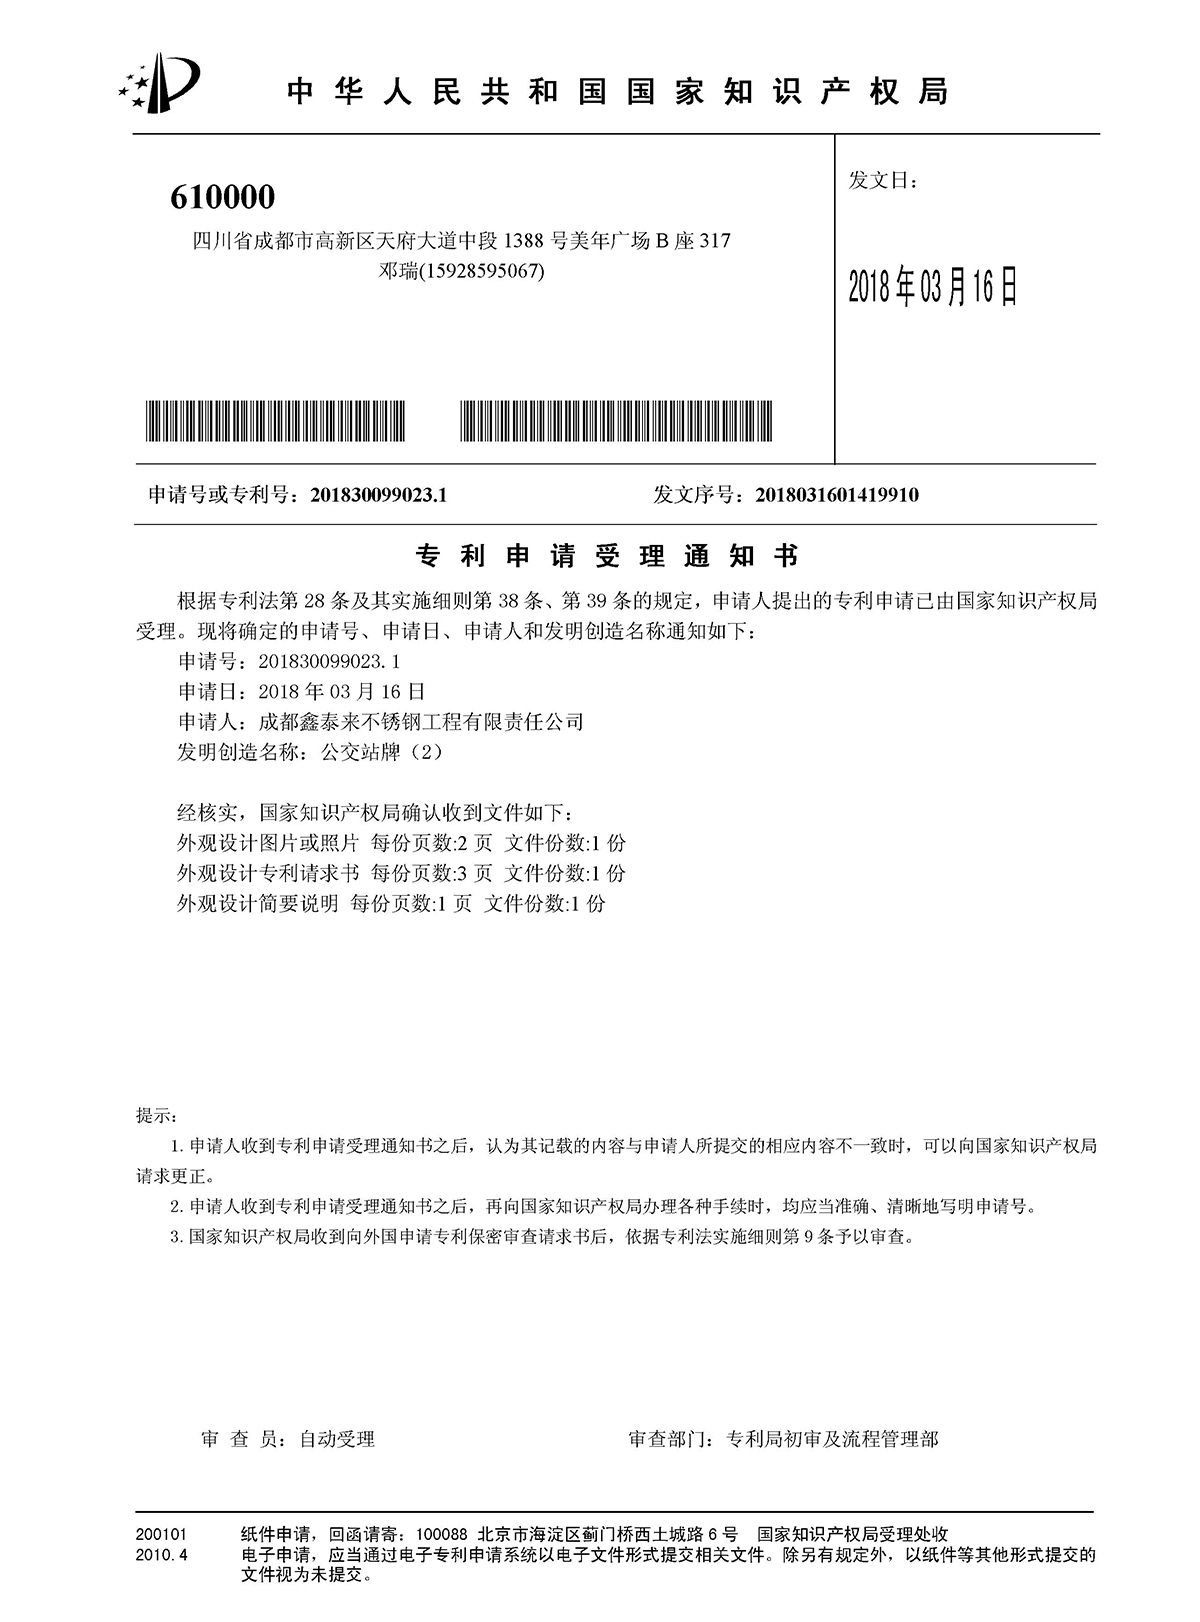 The company has obtained the patent certificate for the desi